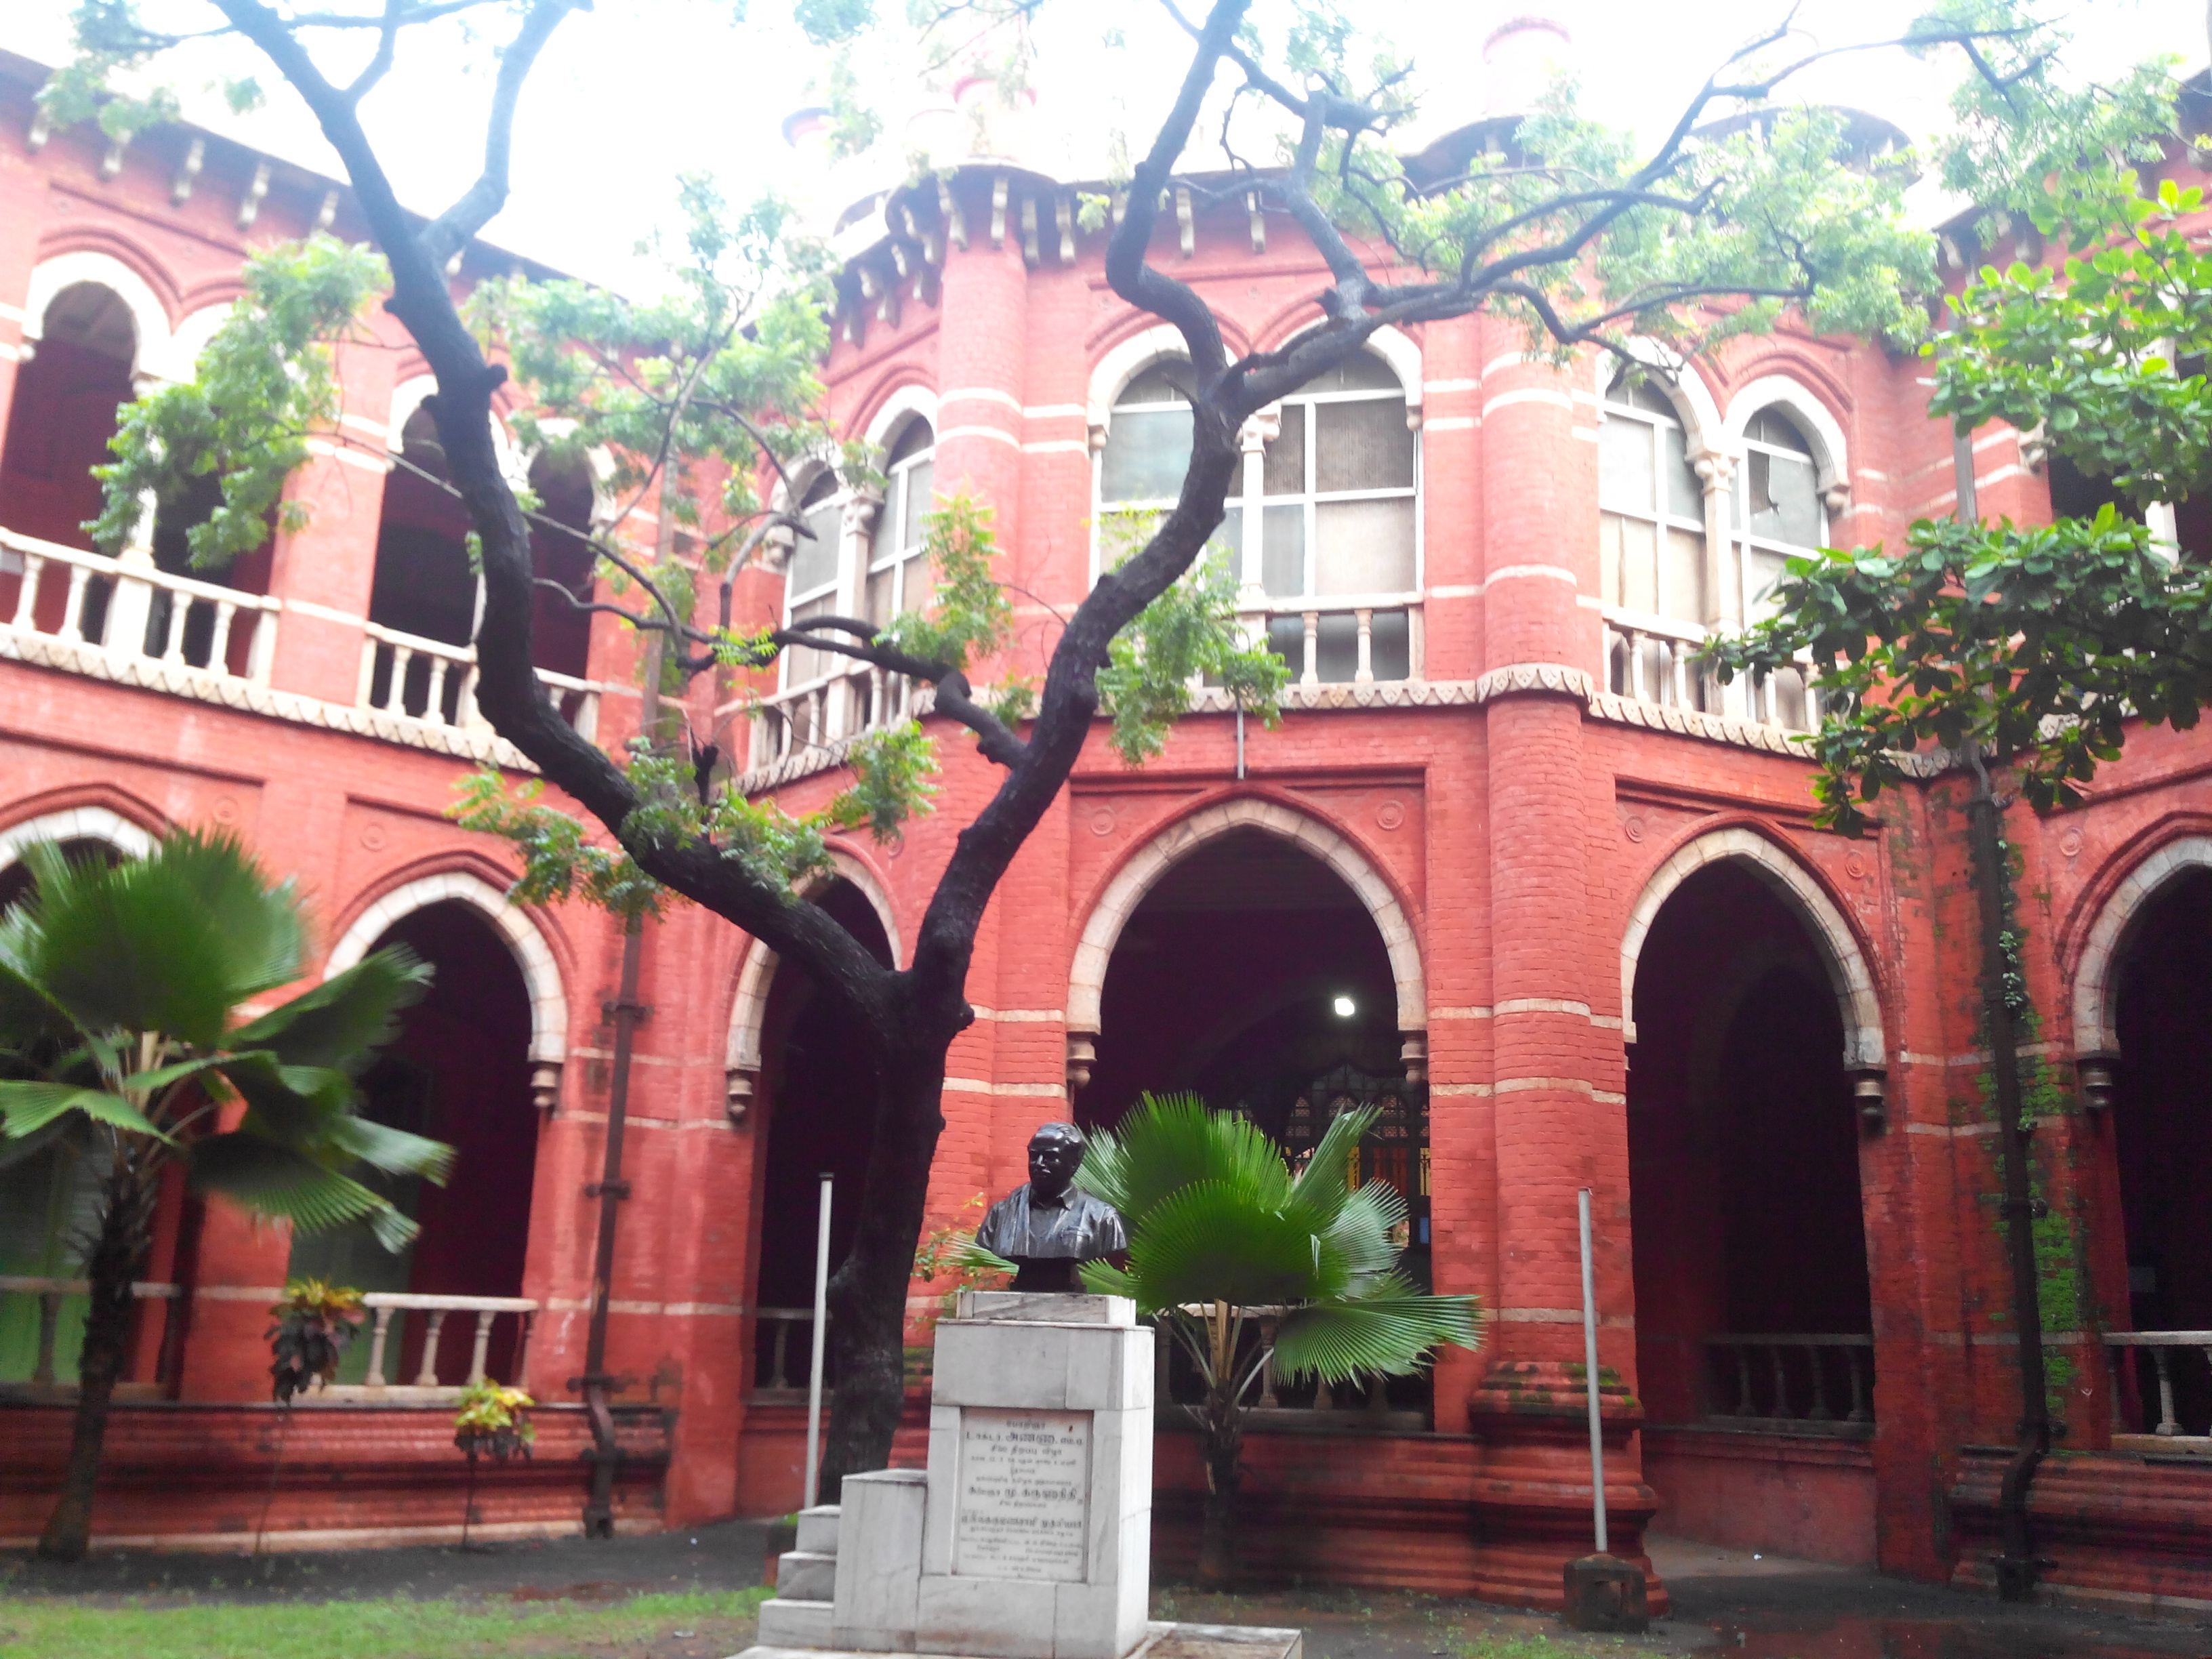 9%2f96%2finside madras law college old building%2c sep 2013